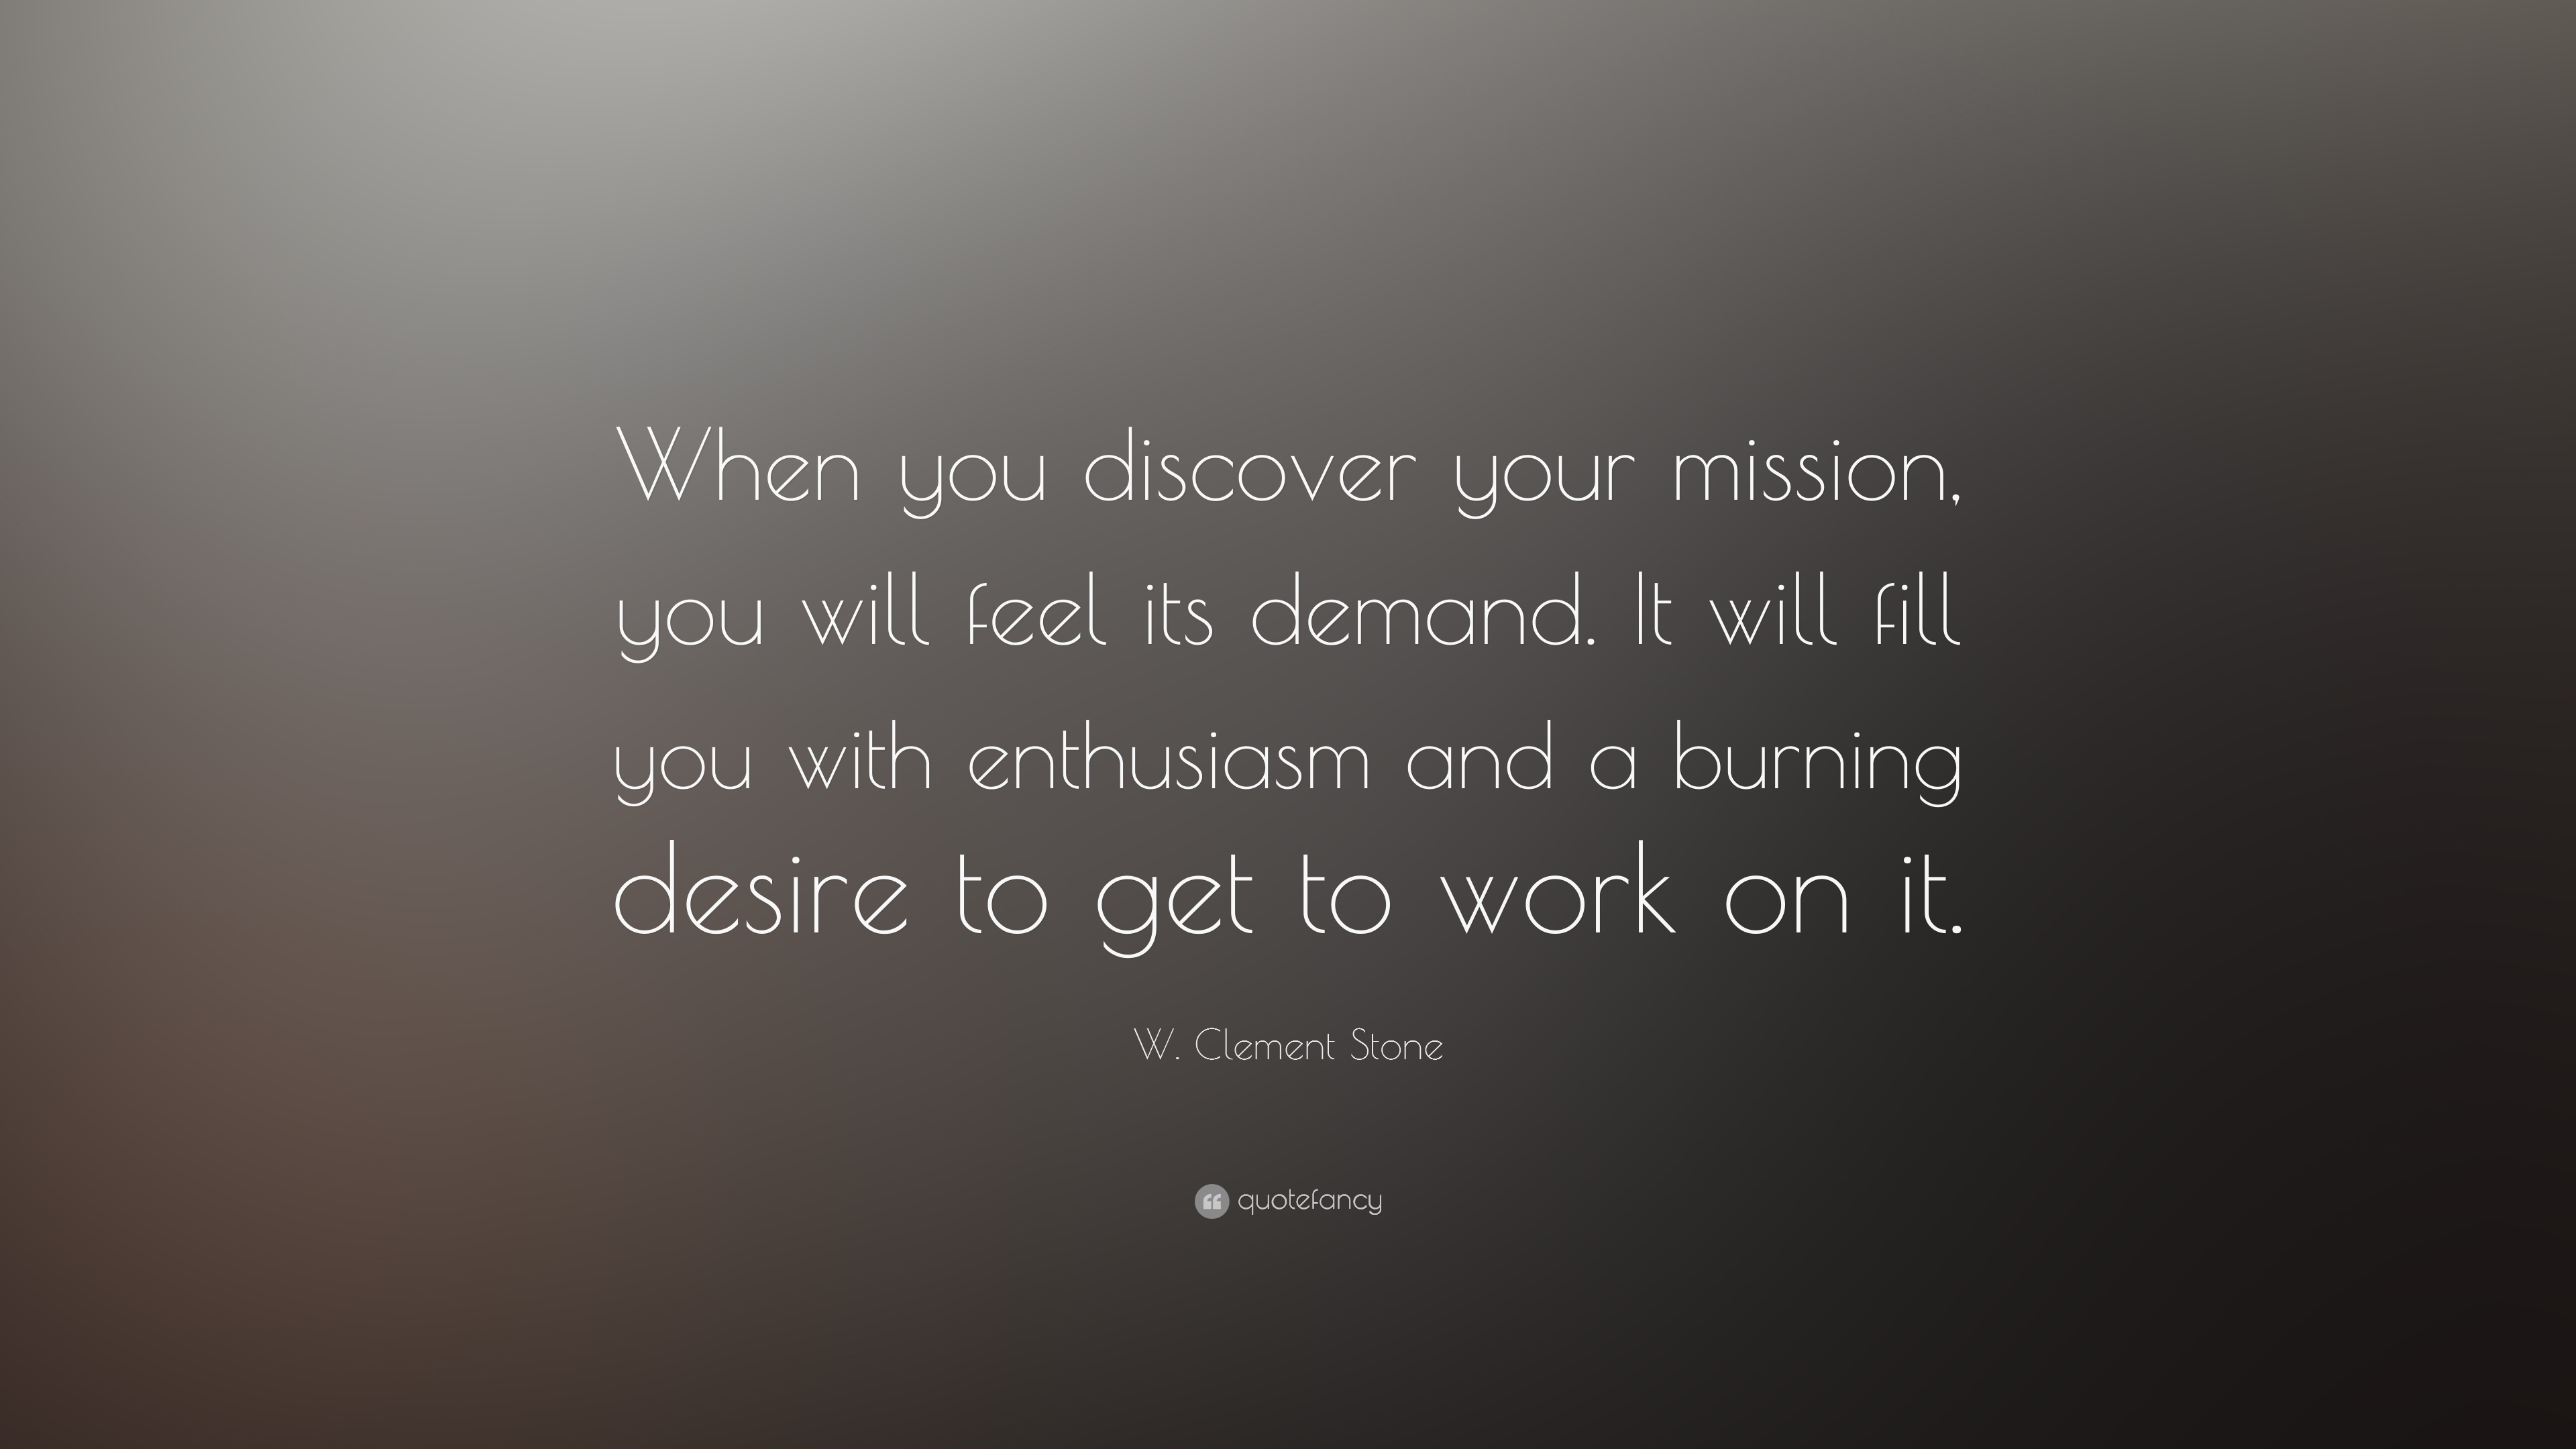 W Clement Stone Quote When You Discover Your Mission You Will